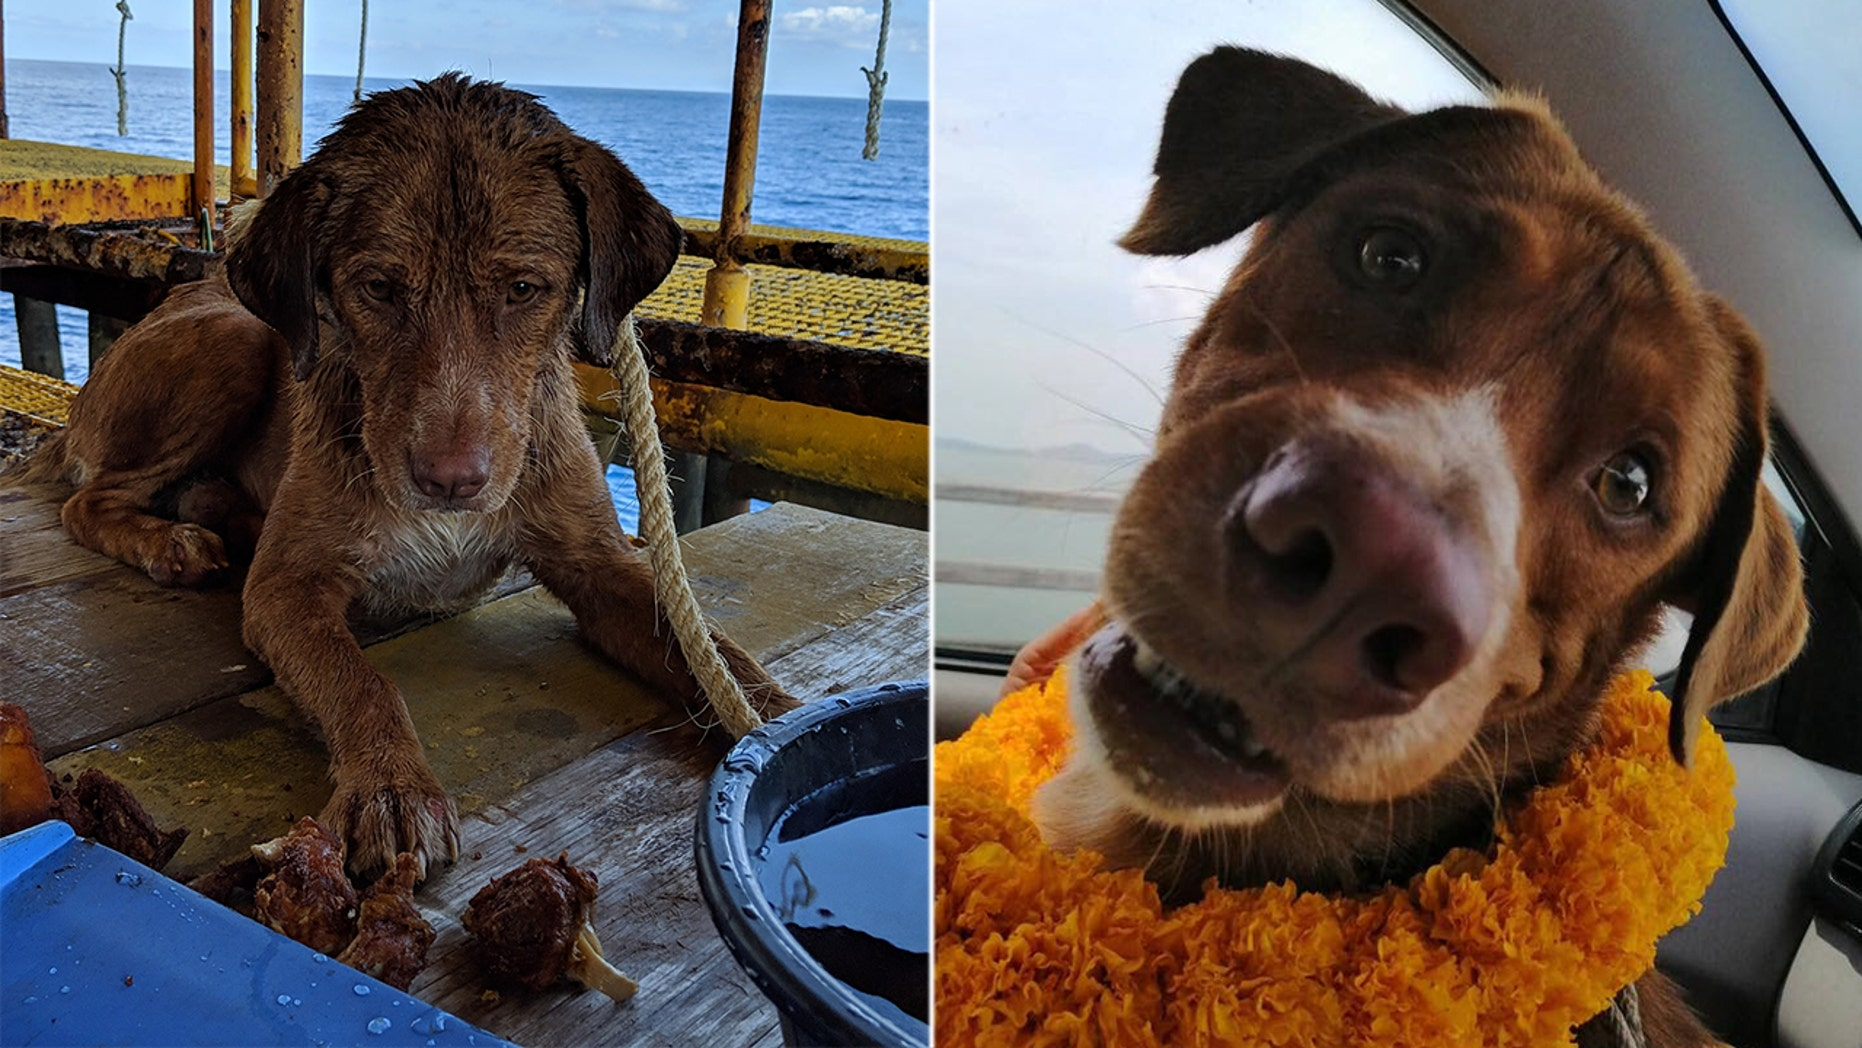 Westlake Legal Group Boonrod-VP1 Stranded dog discovered paddling 130 miles from shore rescued by oil rig workers Travis Fedschun fox-news/world/world-regions/asia fox-news/good-news fox news fnc/world fnc b78fd973-24ce-5a7d-9f9b-e857ade2990d article